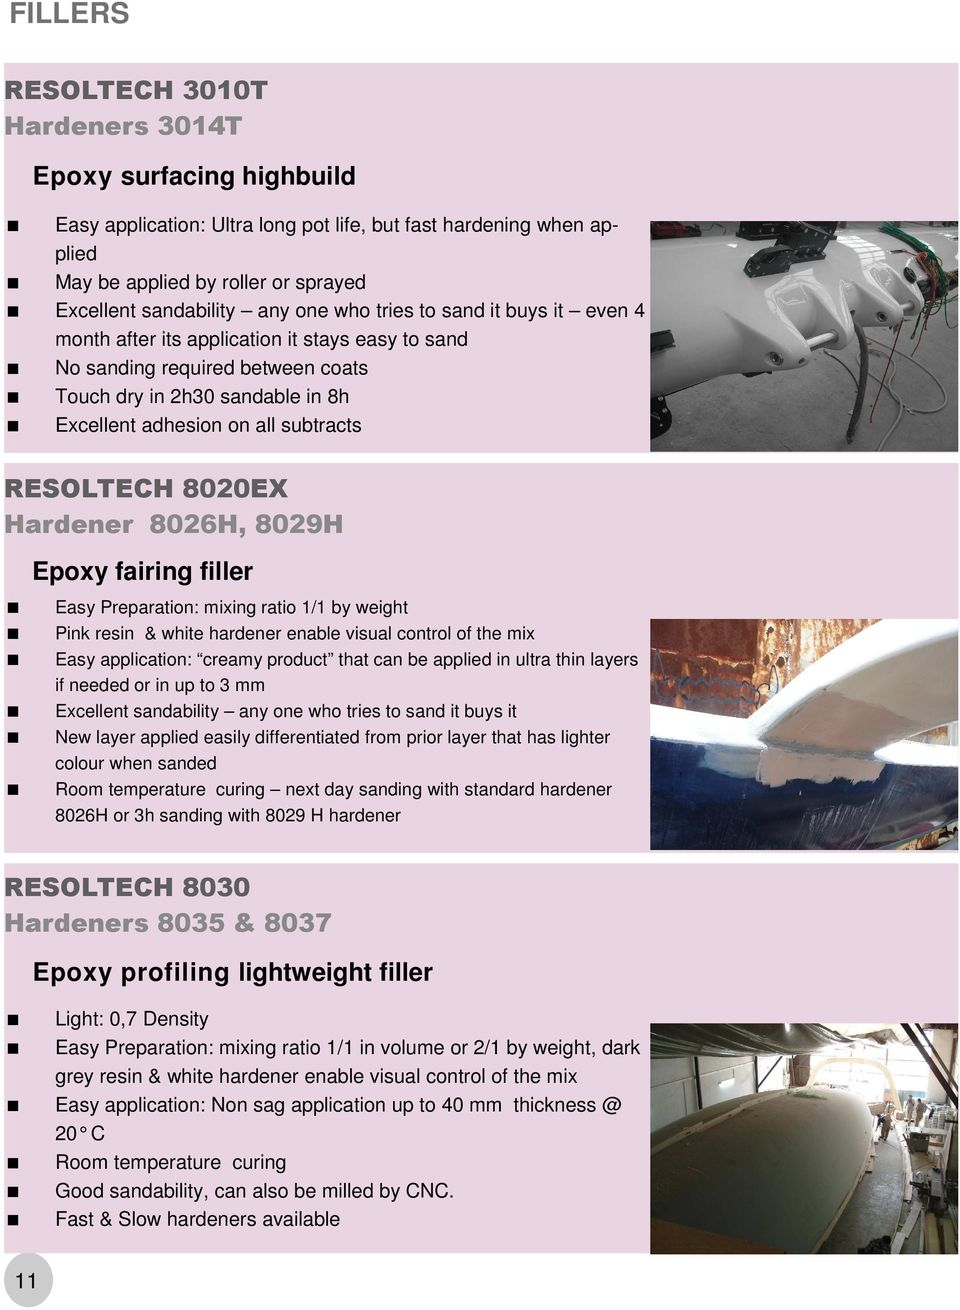 RESOLTECH 8020EX Hardener 8026H, 8029H Epoxy fairing filler Easy Preparation: mixing ratio 1/1 by weight Pink resin & white hardener enable visual control of the mix Easy application: creamy product